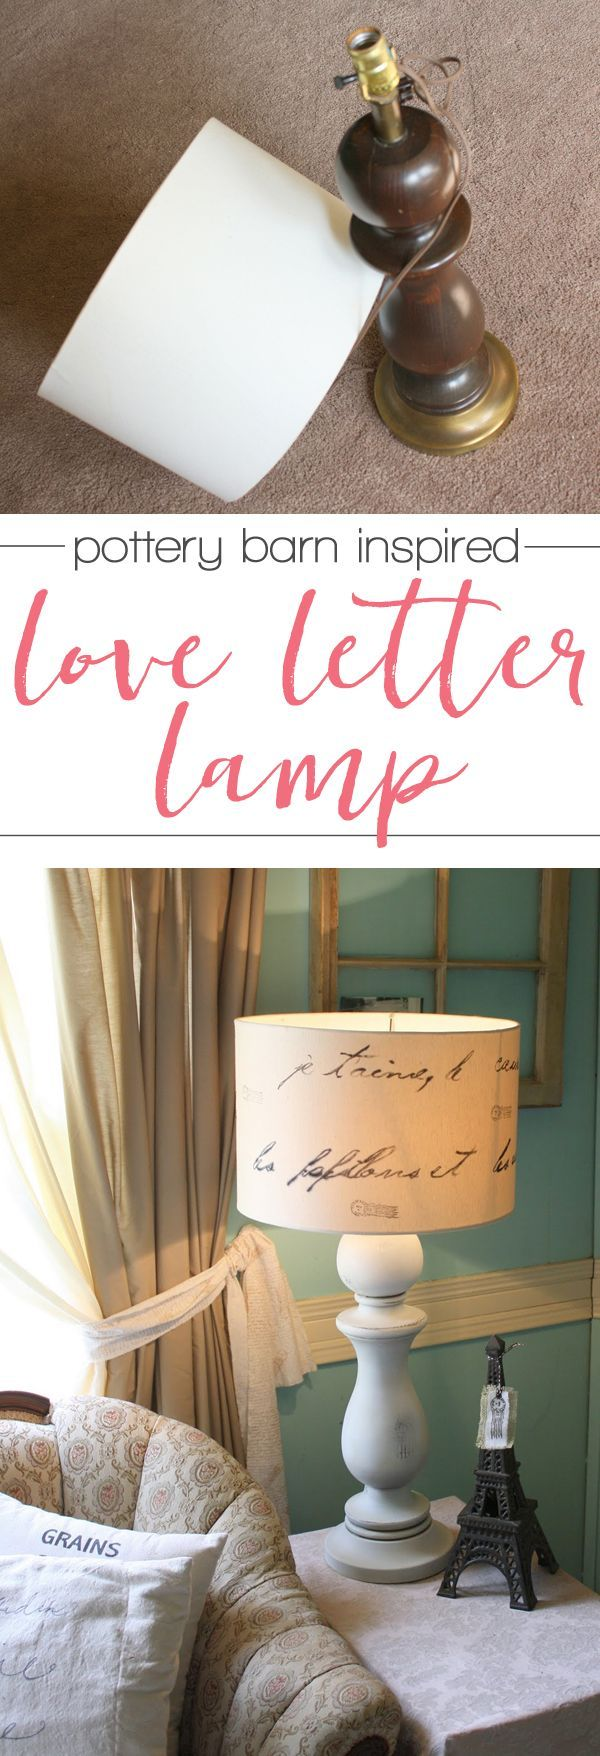 Gorgeous DIY pottery barn inspired love letter lamp - with an actual love letter on the shade. Pinning this for that thrift store lamp I've been…